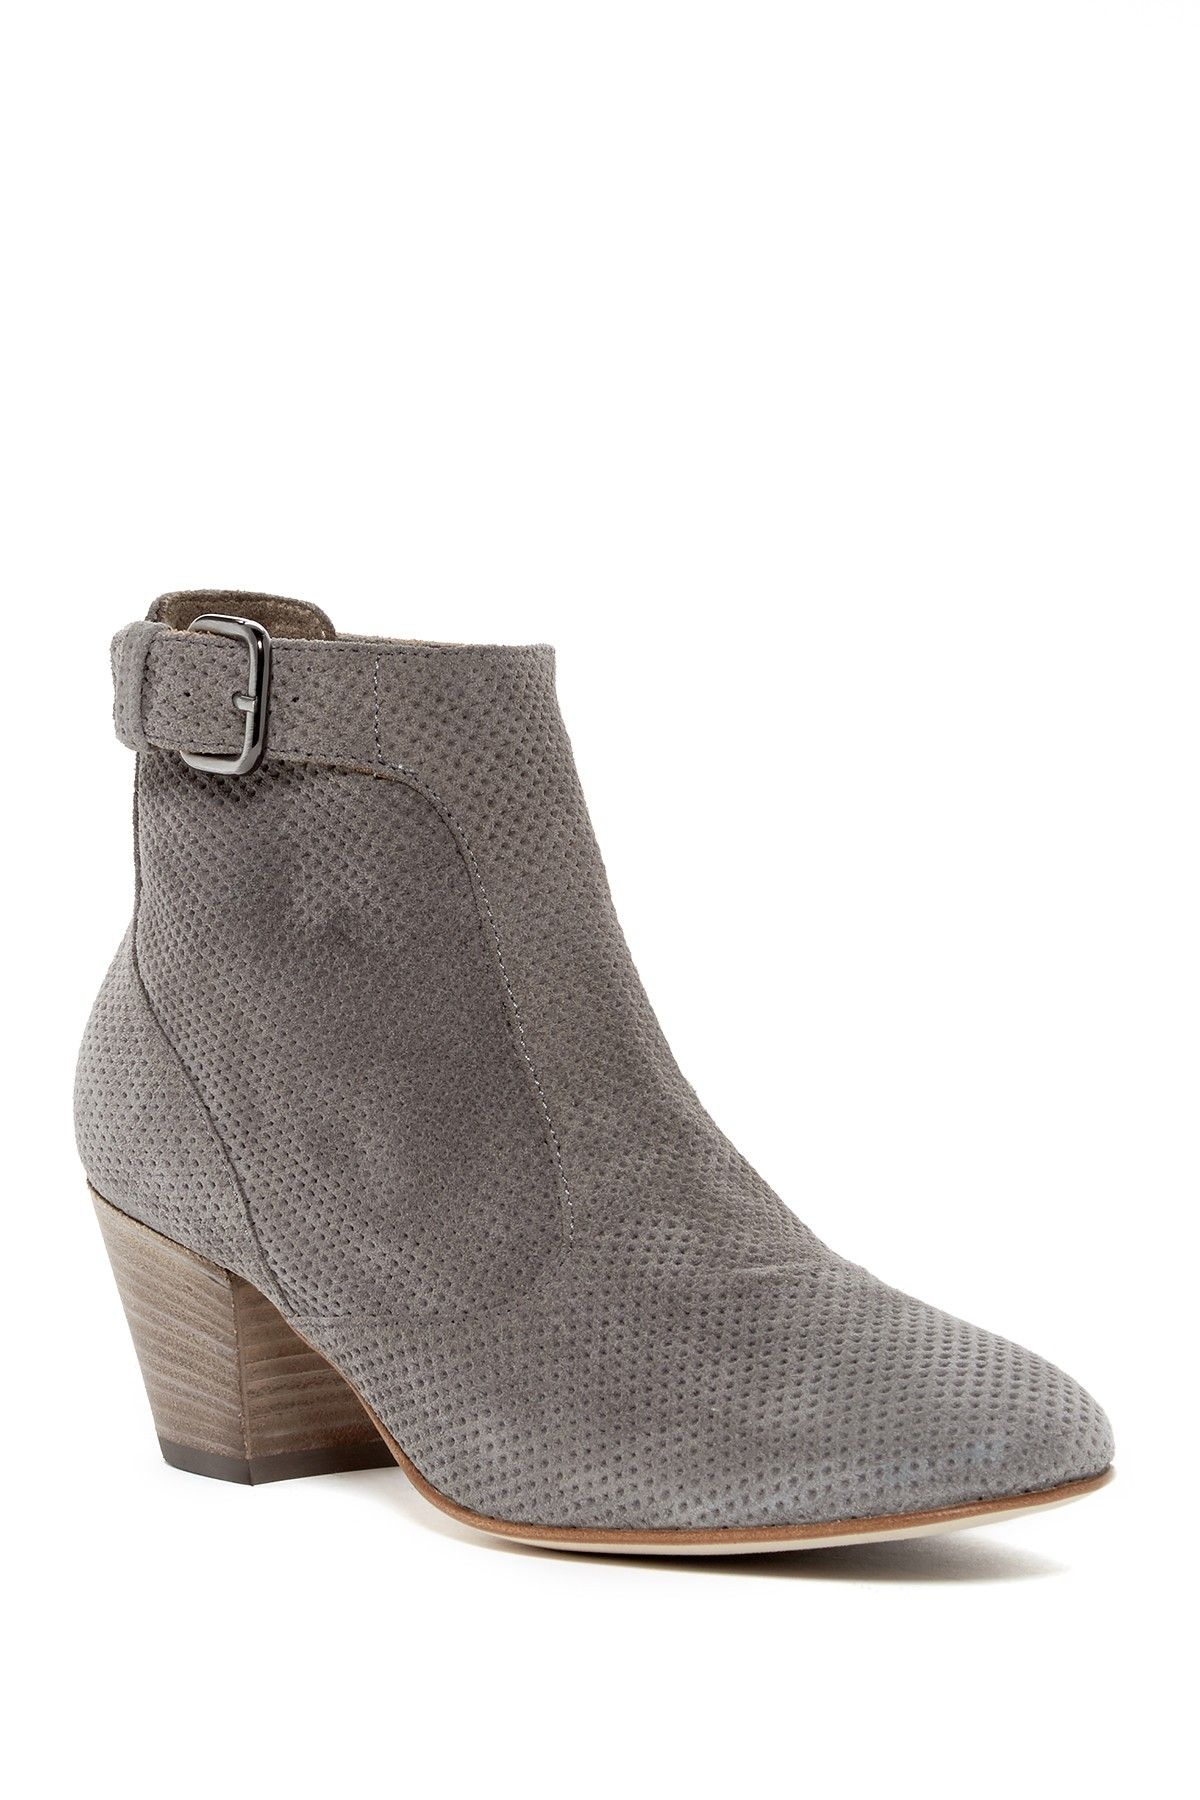 France ankle bootie frances ouconnor bootie and k on